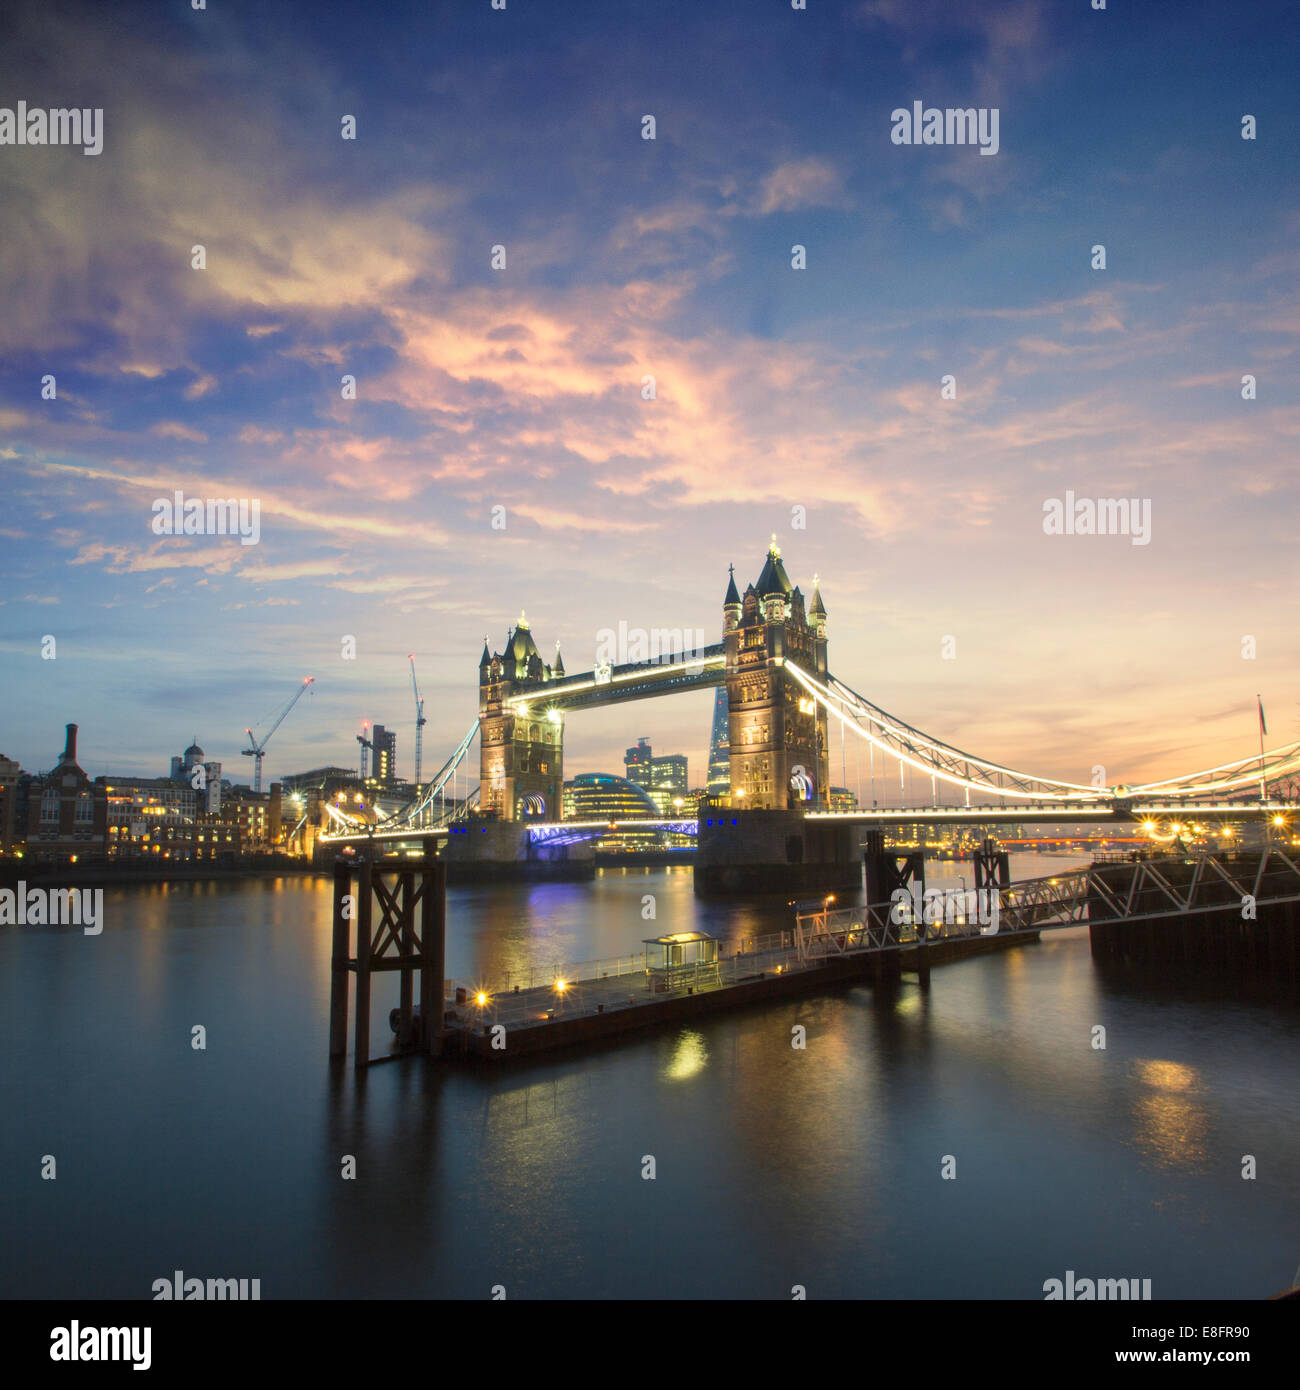 United Kingdom, London, Tower Bridge at night - Stock Image